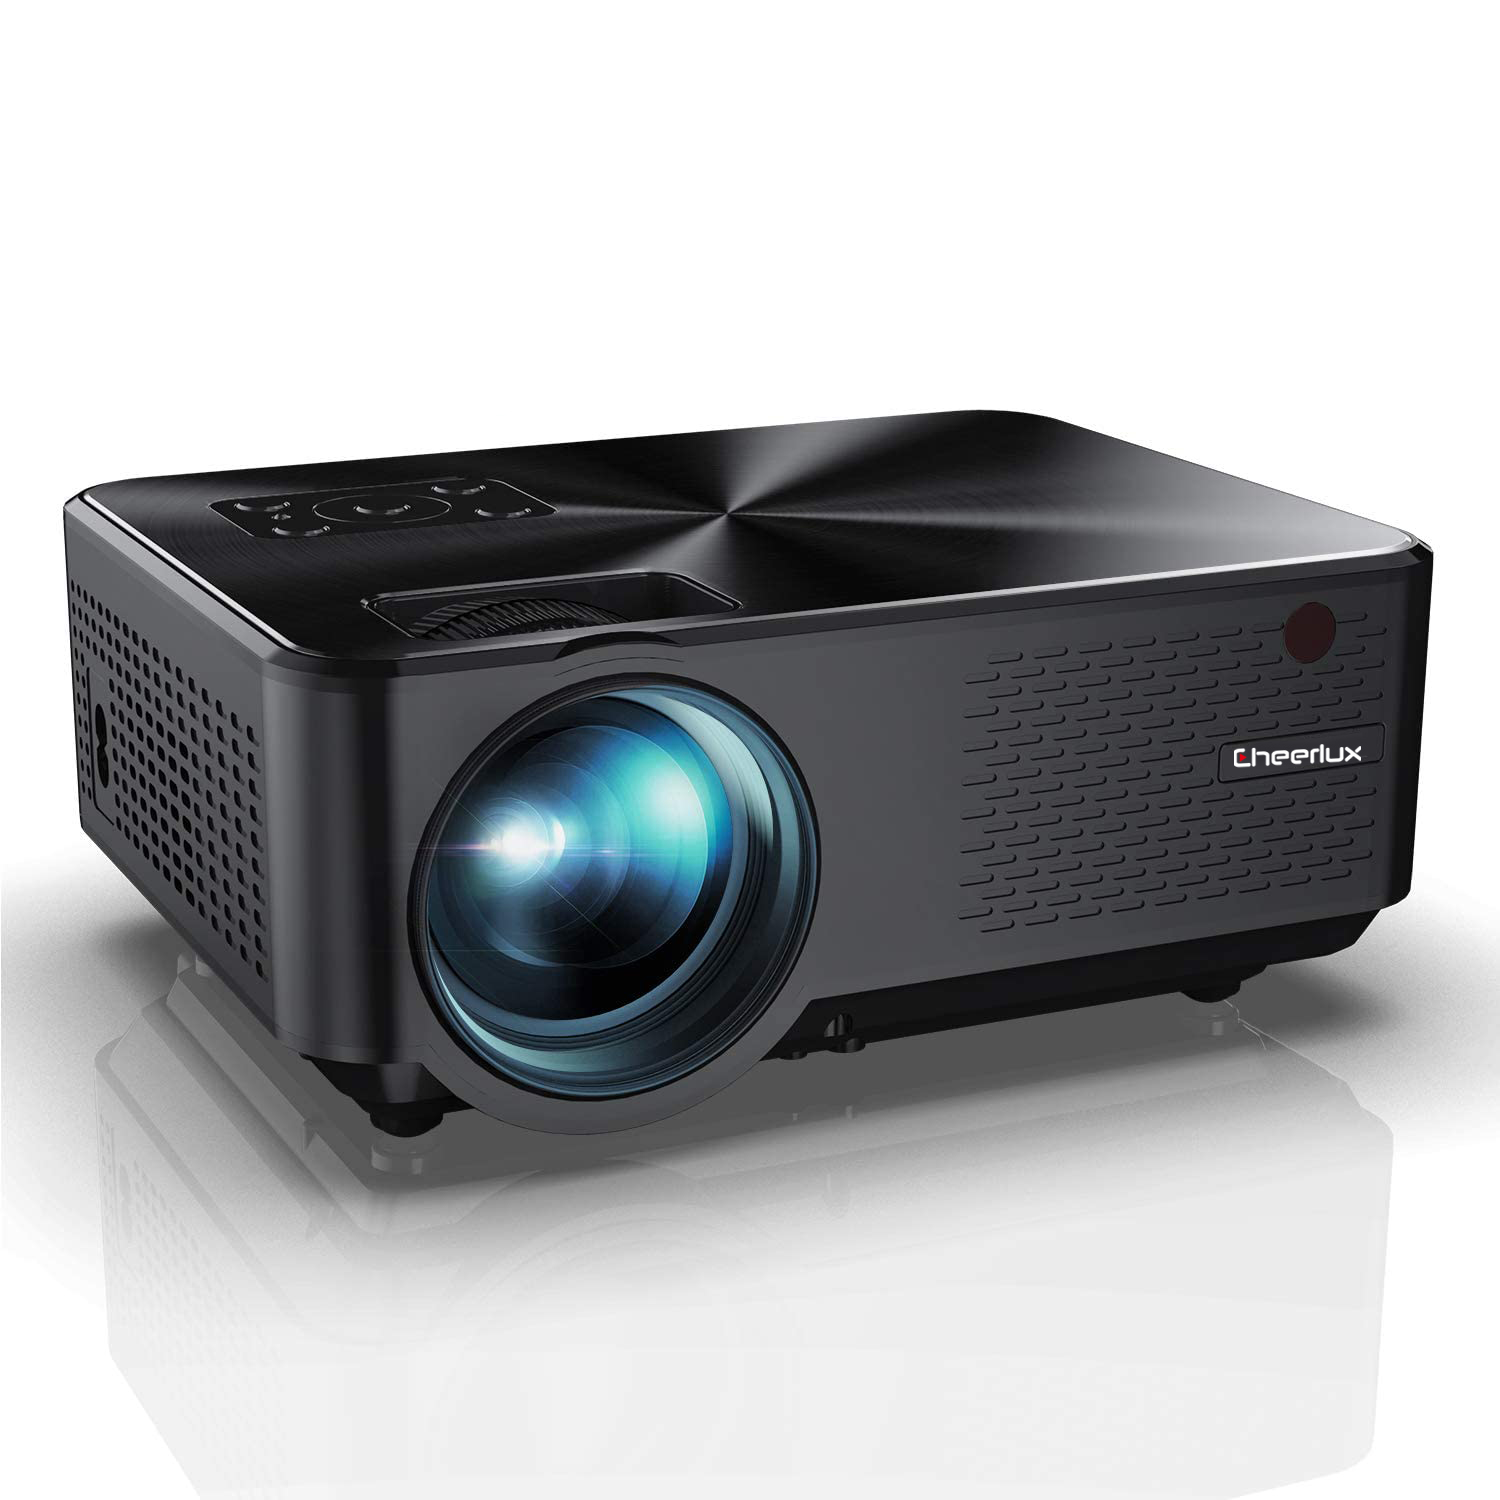 CHEERLUX C9 Newest HD <strong>Projector</strong> native 720P 2800 lumens LED <strong>Projector</strong> Home Theater <strong>Projector</strong>